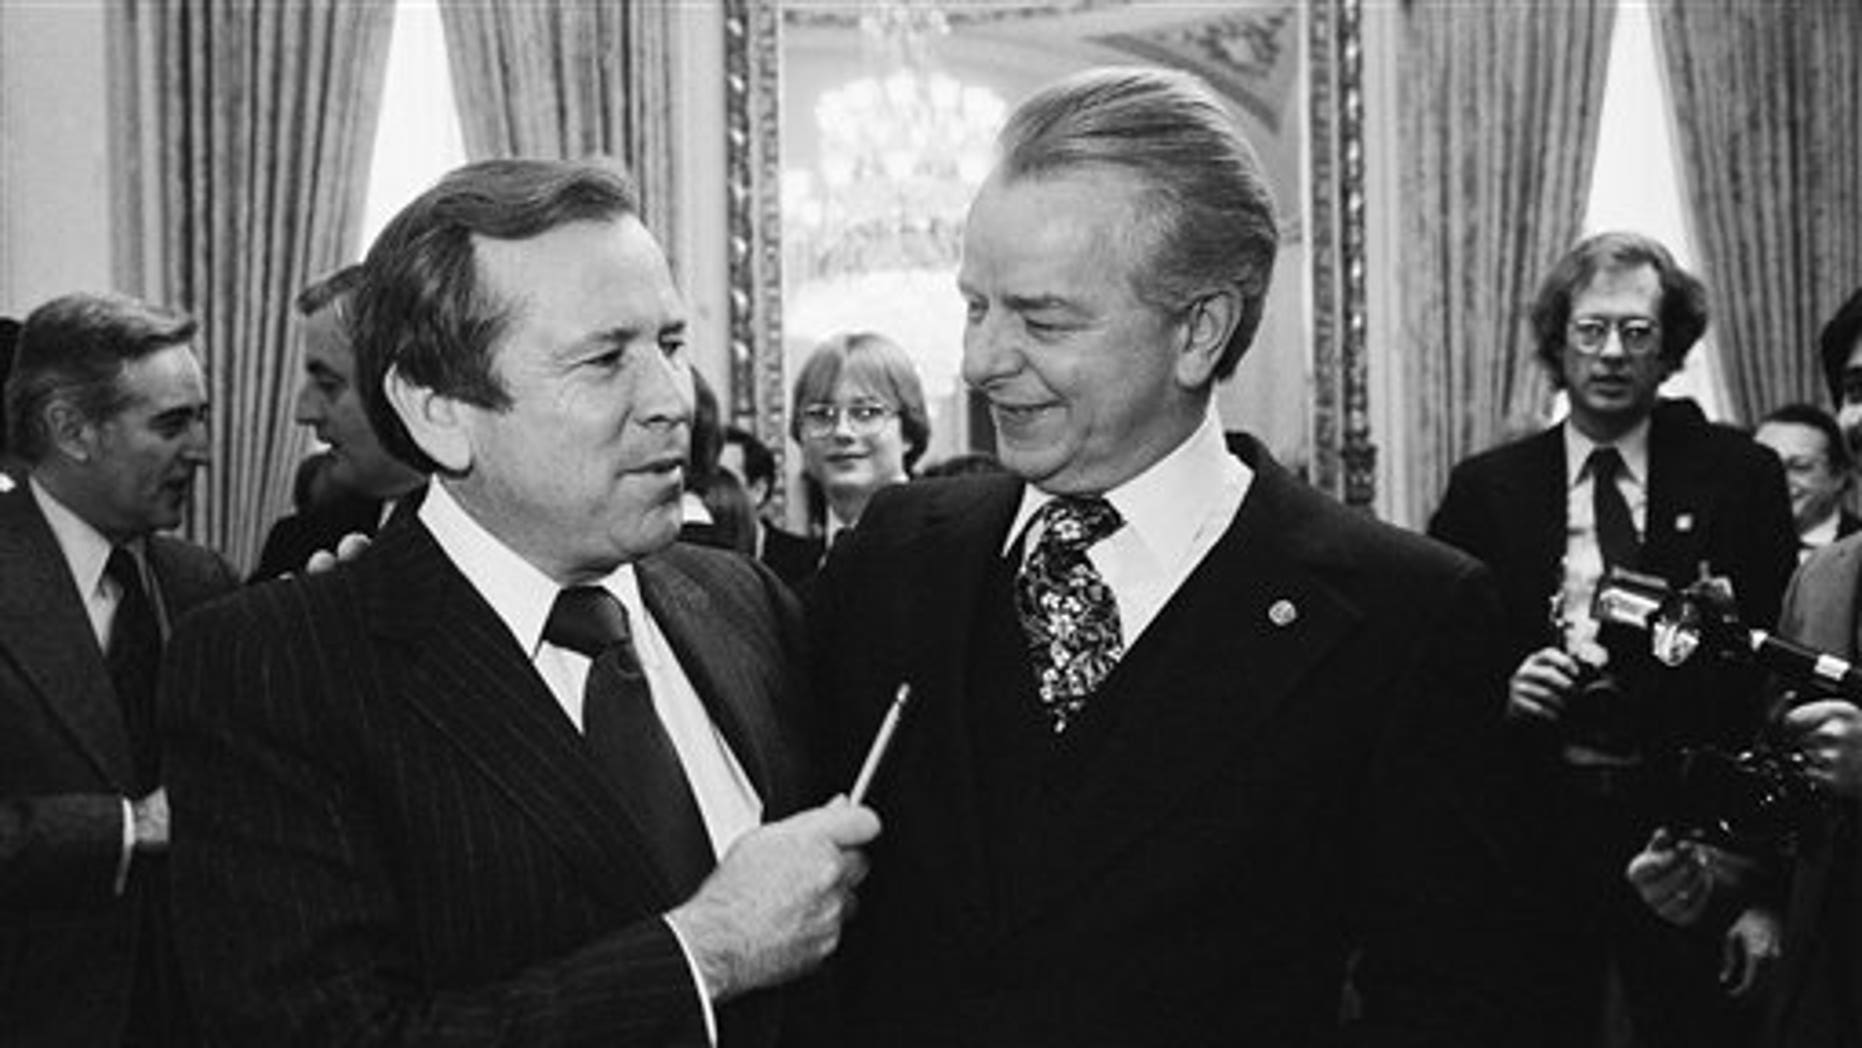 FILE - This Dec. 4, 1980 file photo shows Senate Majority Leader Robert Byrd of W.Va., right, talking to the man who will replace him, Sen. Howard Baker, R-Tenn., on Capitol Hill in Washington. Baker, who asked what President Richard Nixon knew about Watergate, has died. He was 88. (AP Photo/Chick Harrity, File)